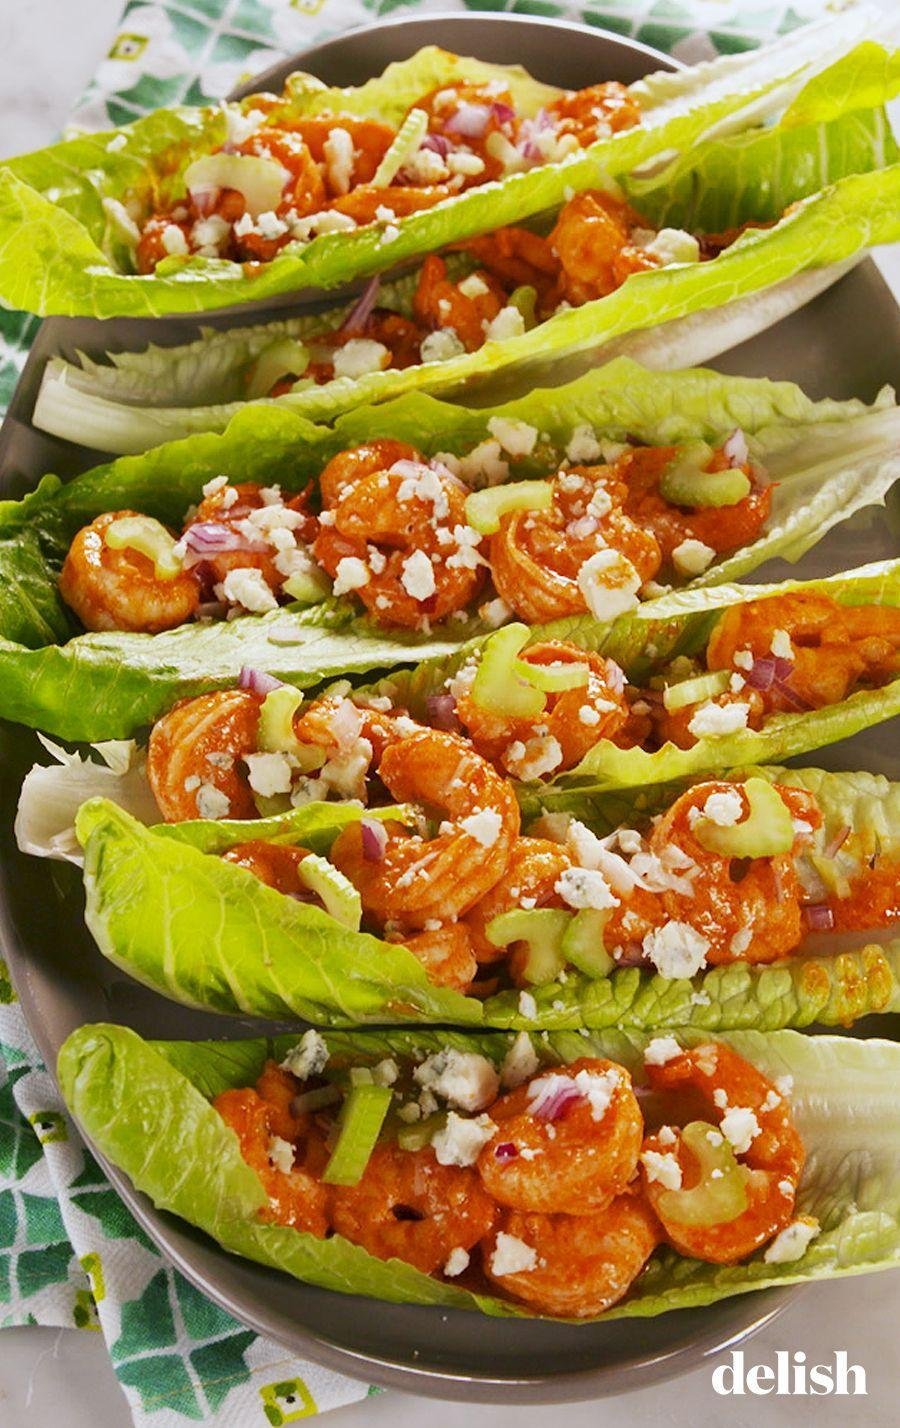 """<p>A healthy take on your favorite wings. </p><p>Get the recipe from <a href=""""https://www.delish.com/cooking/a26331032/buffalo-shrimp-lettuce-wraps-recipe/"""" rel=""""nofollow noopener"""" target=""""_blank"""" data-ylk=""""slk:Delish"""" class=""""link rapid-noclick-resp"""">Delish</a>.</p>"""